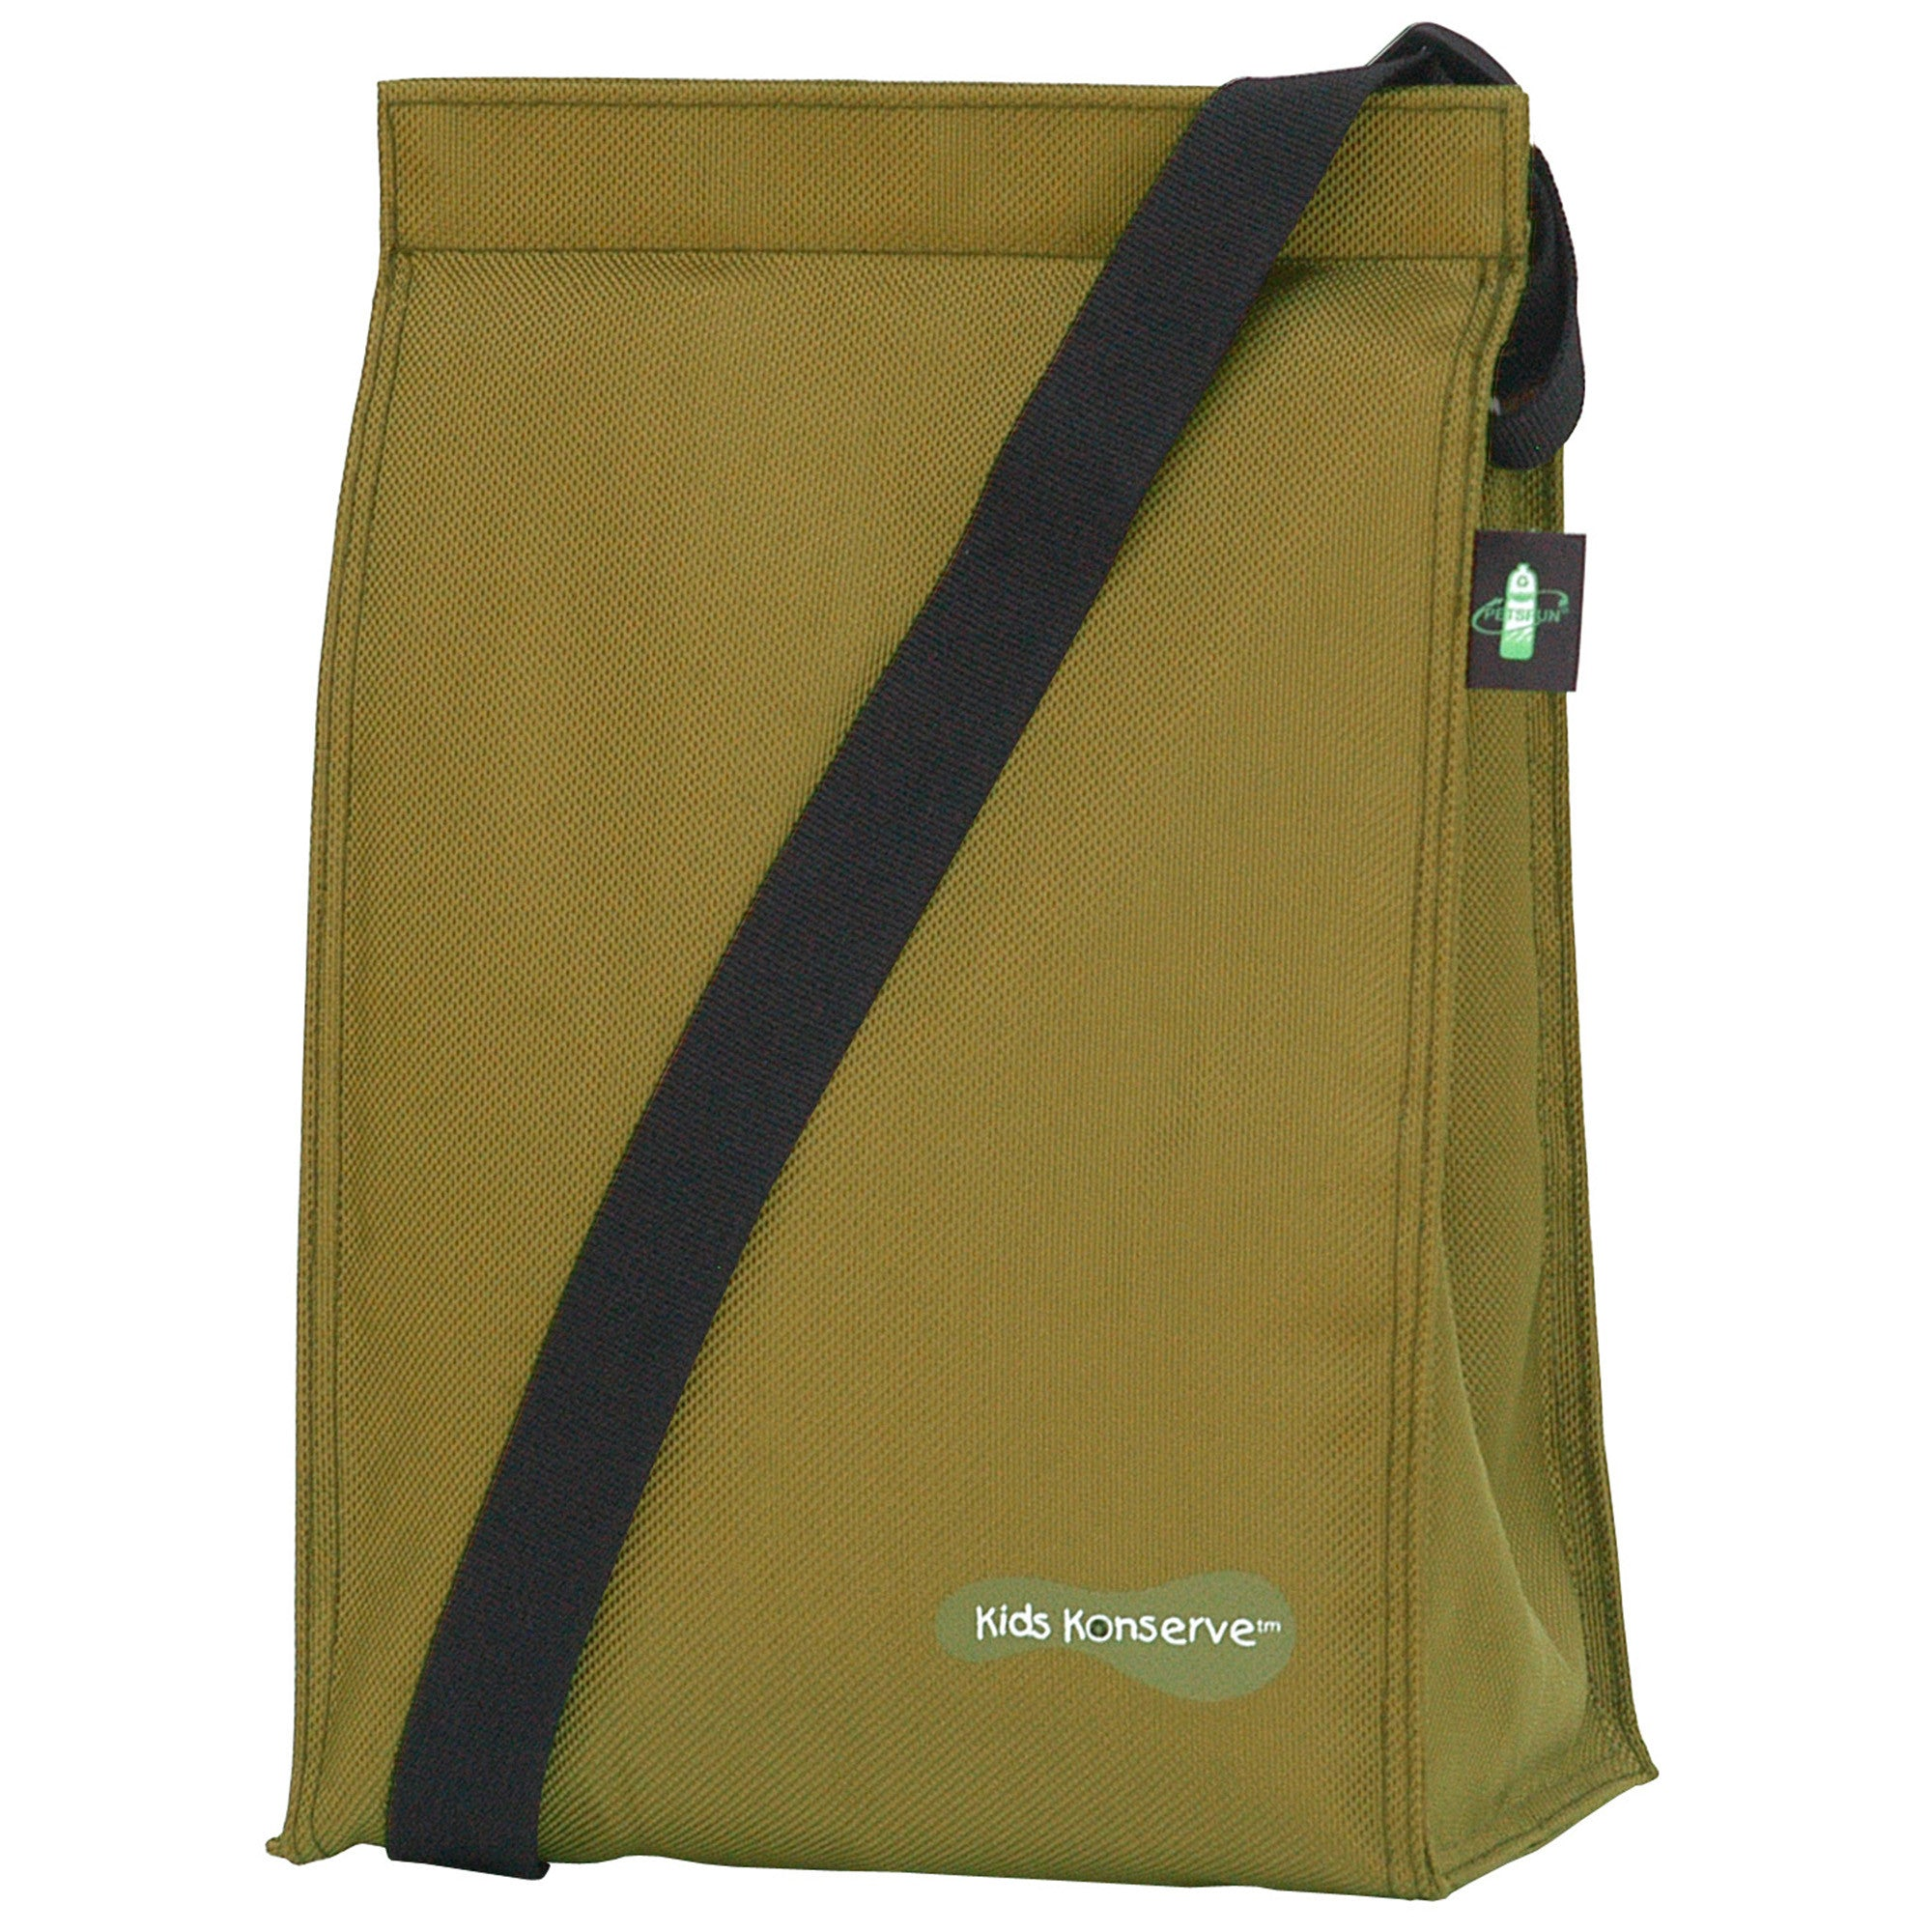 Kids Konserve Insulated Lunch Bag Kids Konserve Lunch Boxes and Bags Moss (Olive) at Little Earth Nest Eco Shop